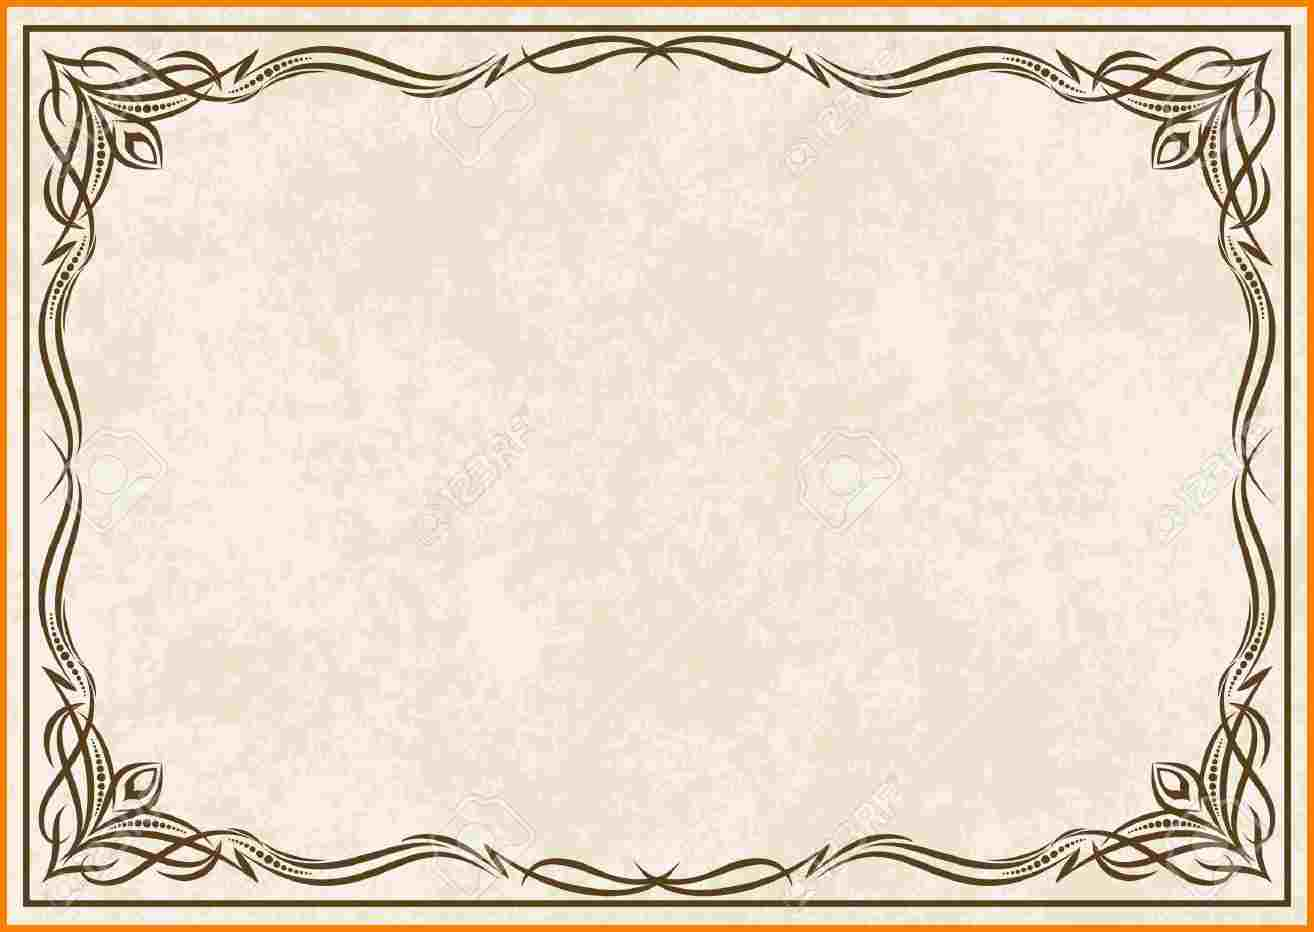 Free Certificate Borders Clipart The Cliparts